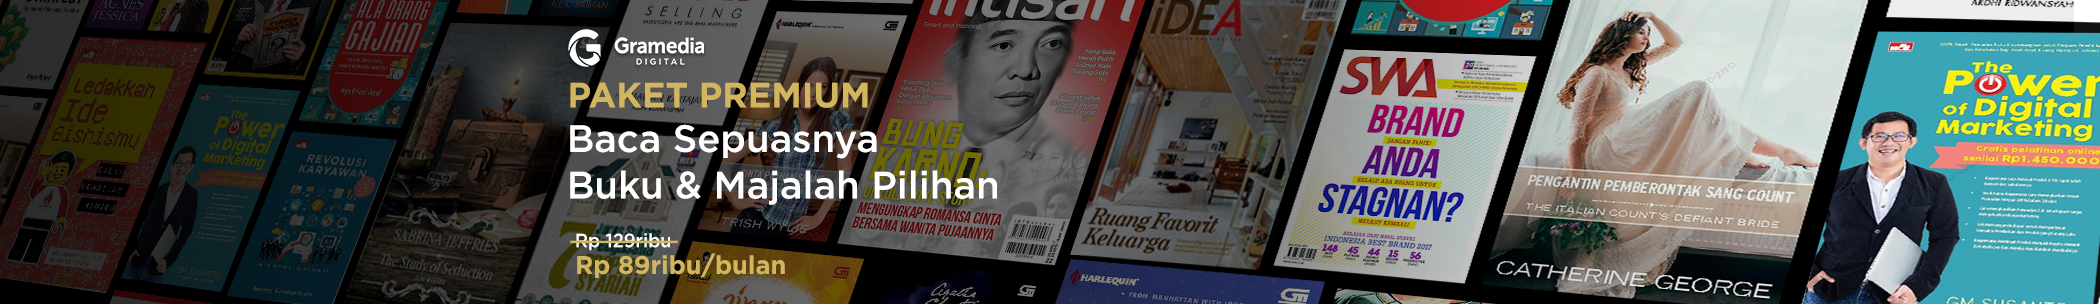 Gramedia Premium All you can read - web